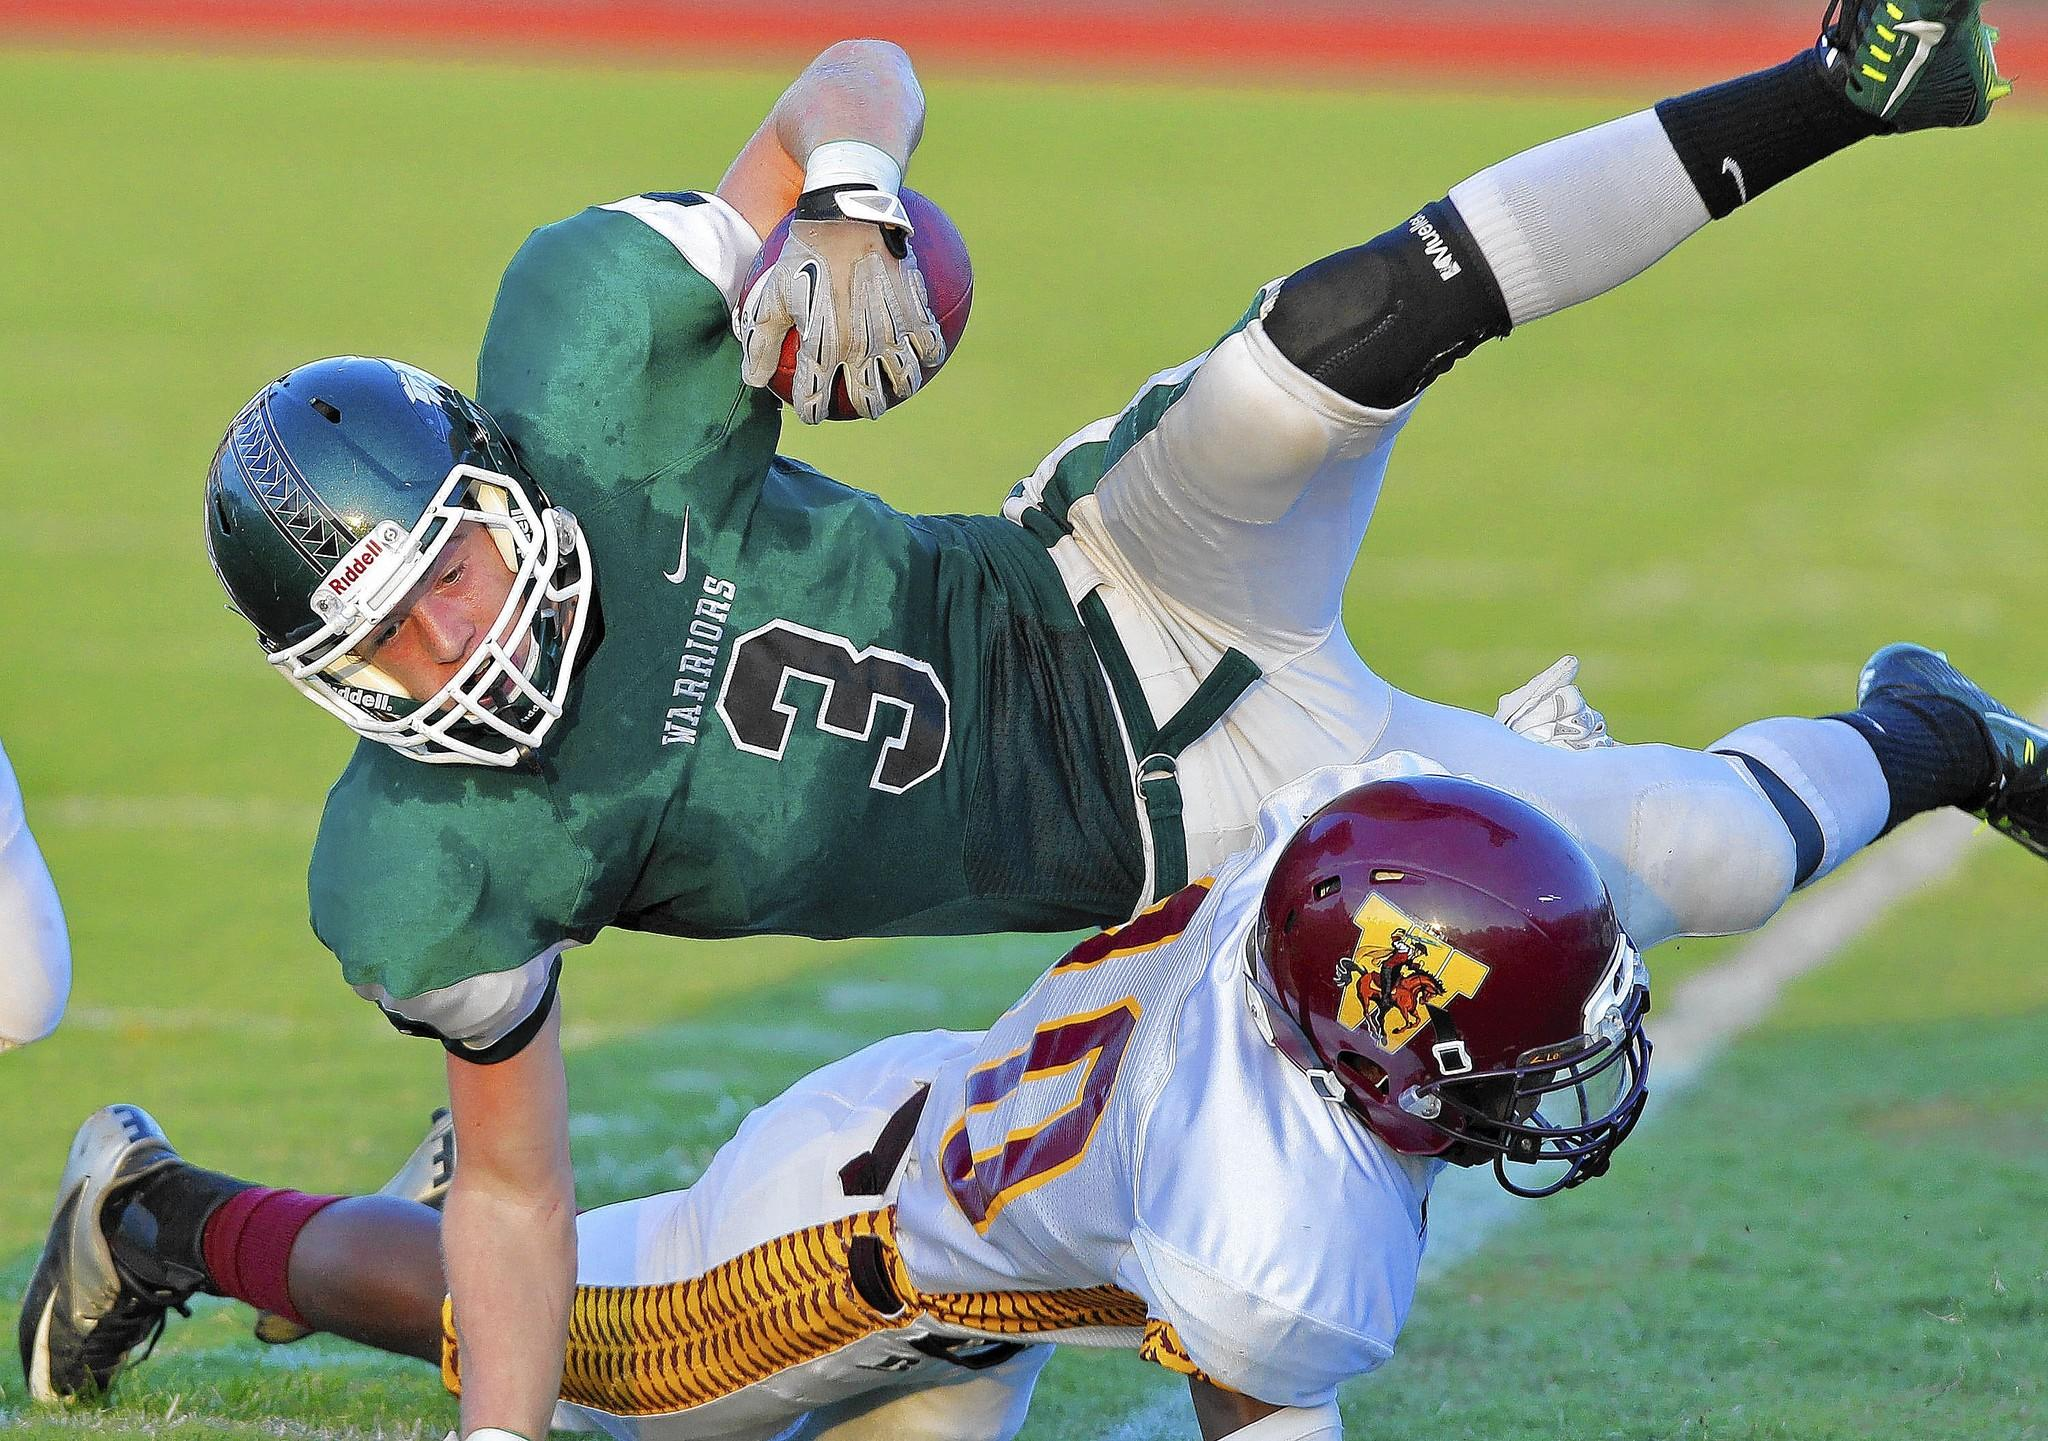 Kecoughtan's Tyler Crist, top, is tackled by Warwick's Travis Williams during Thursday's game at Darling Stadium.